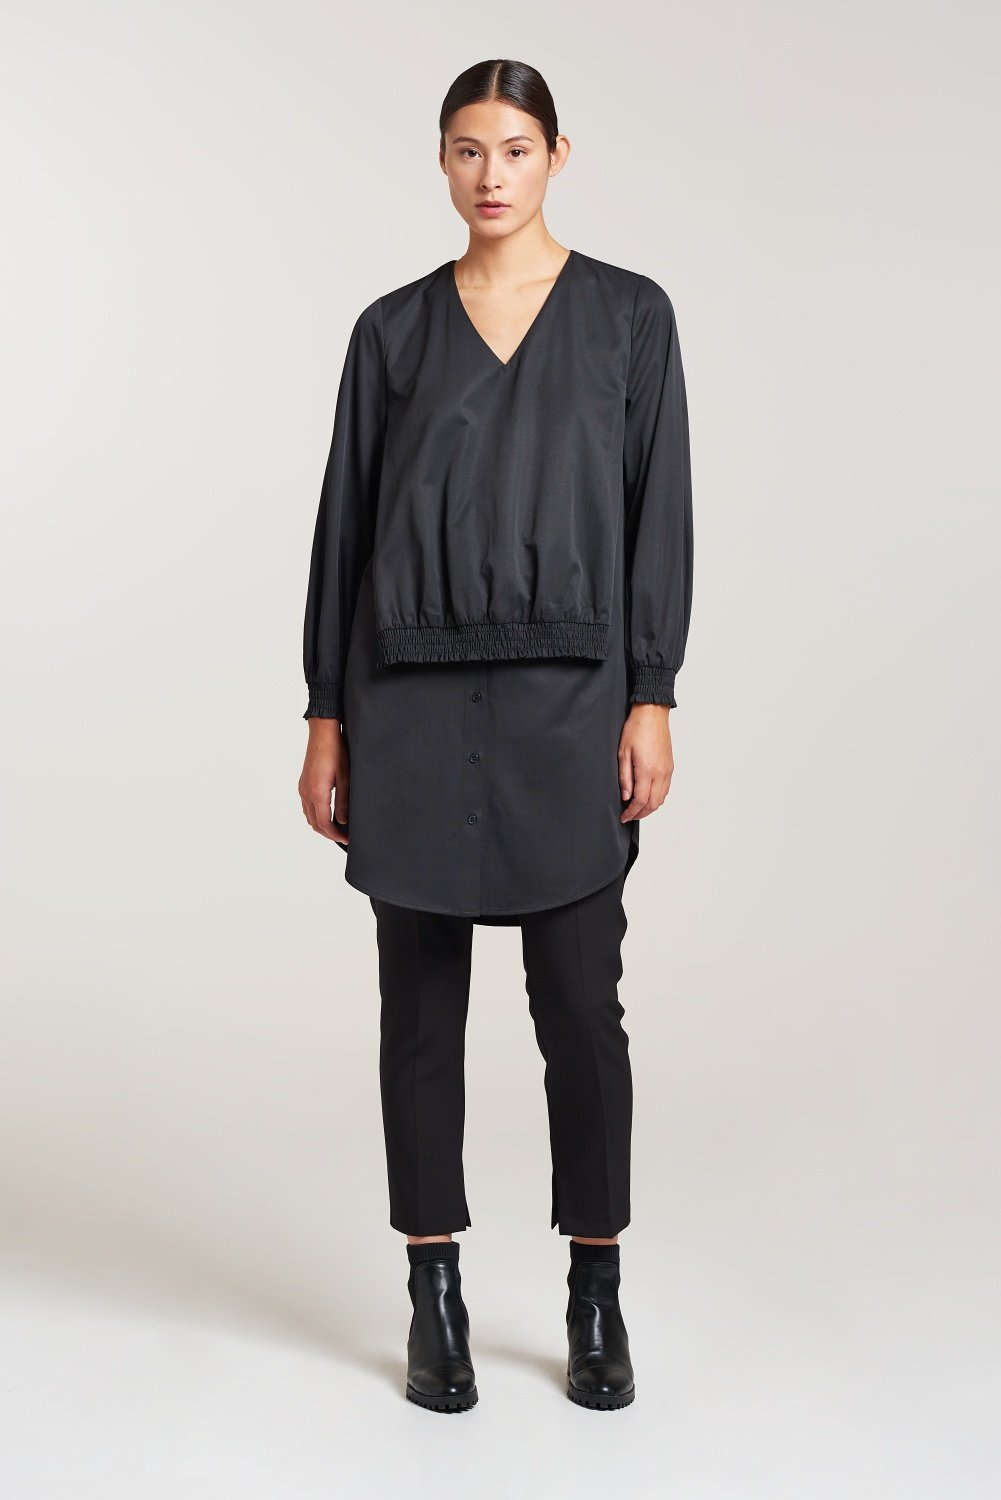 Palones Black Smocking Elastic Shirt Dress